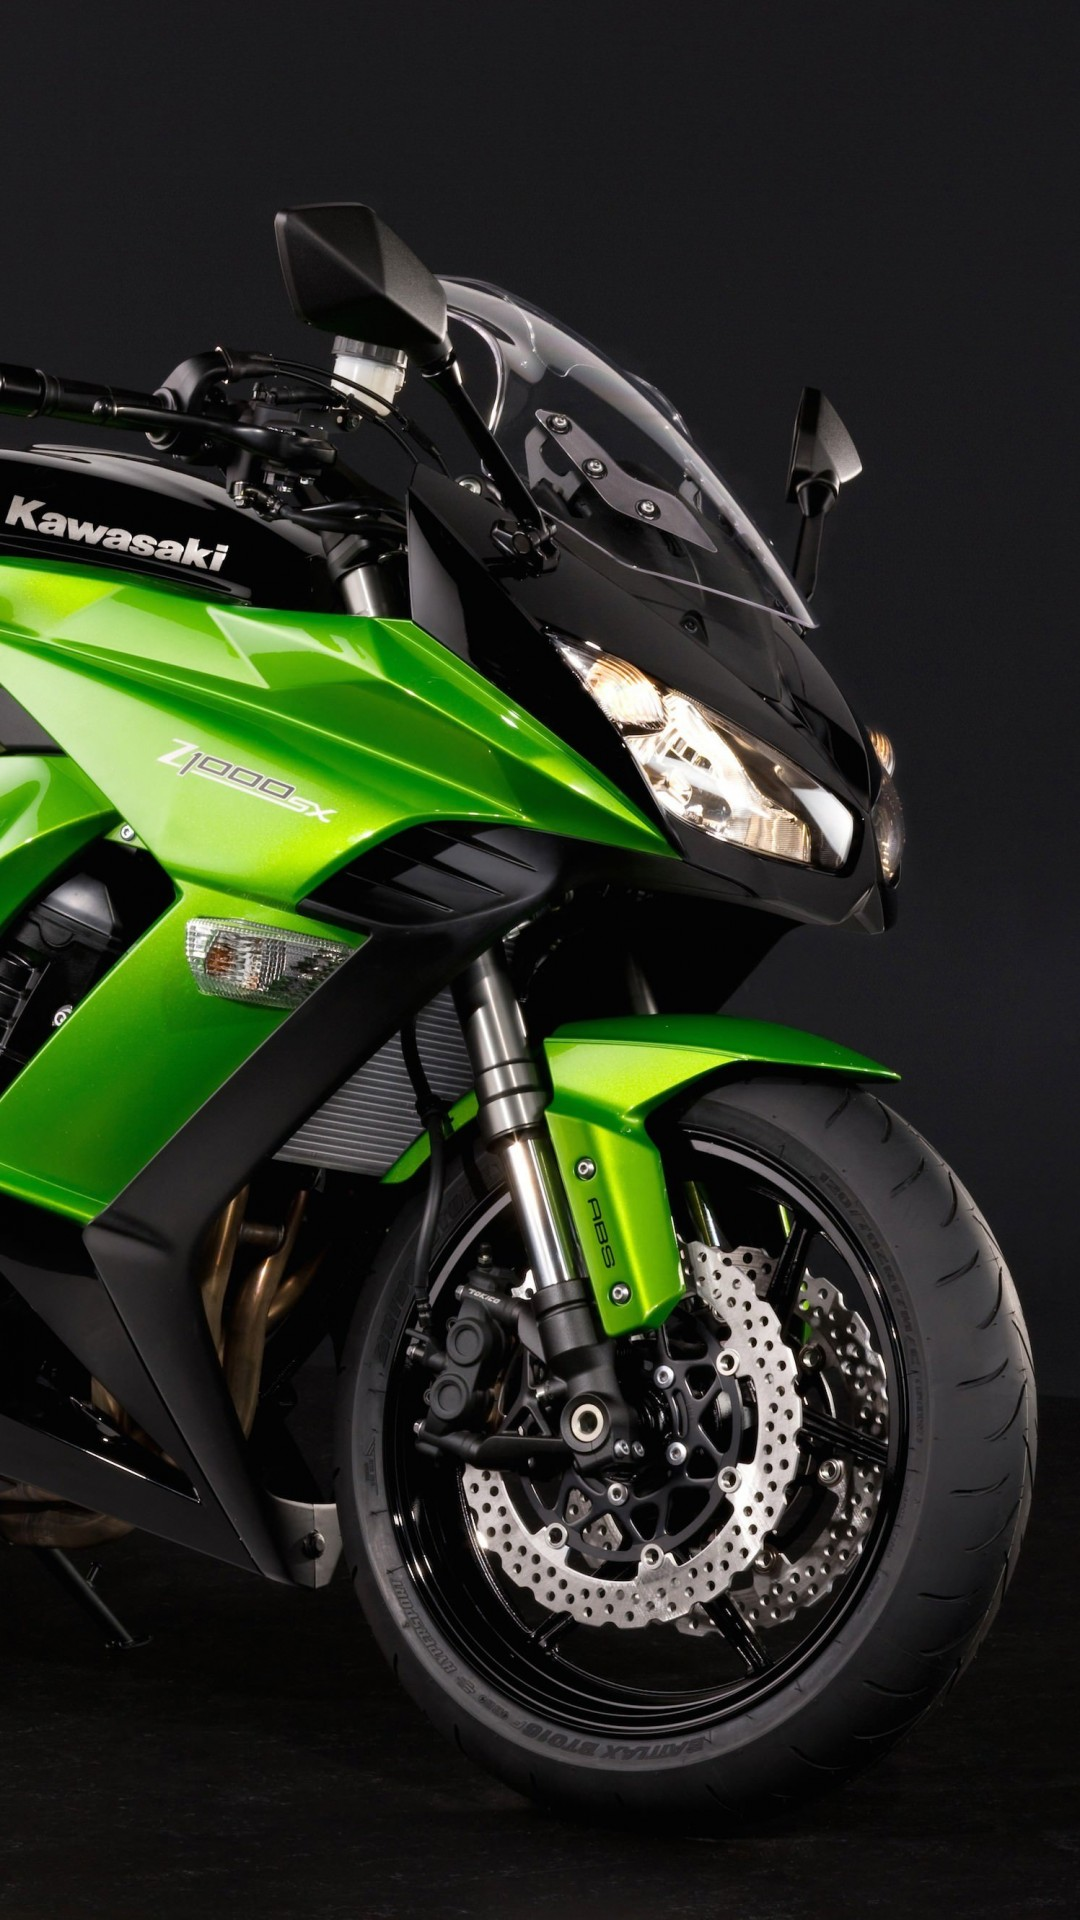 Kawasaki Kawasaki Z1000SX Wallpaper for SAMSUNG Galaxy S4